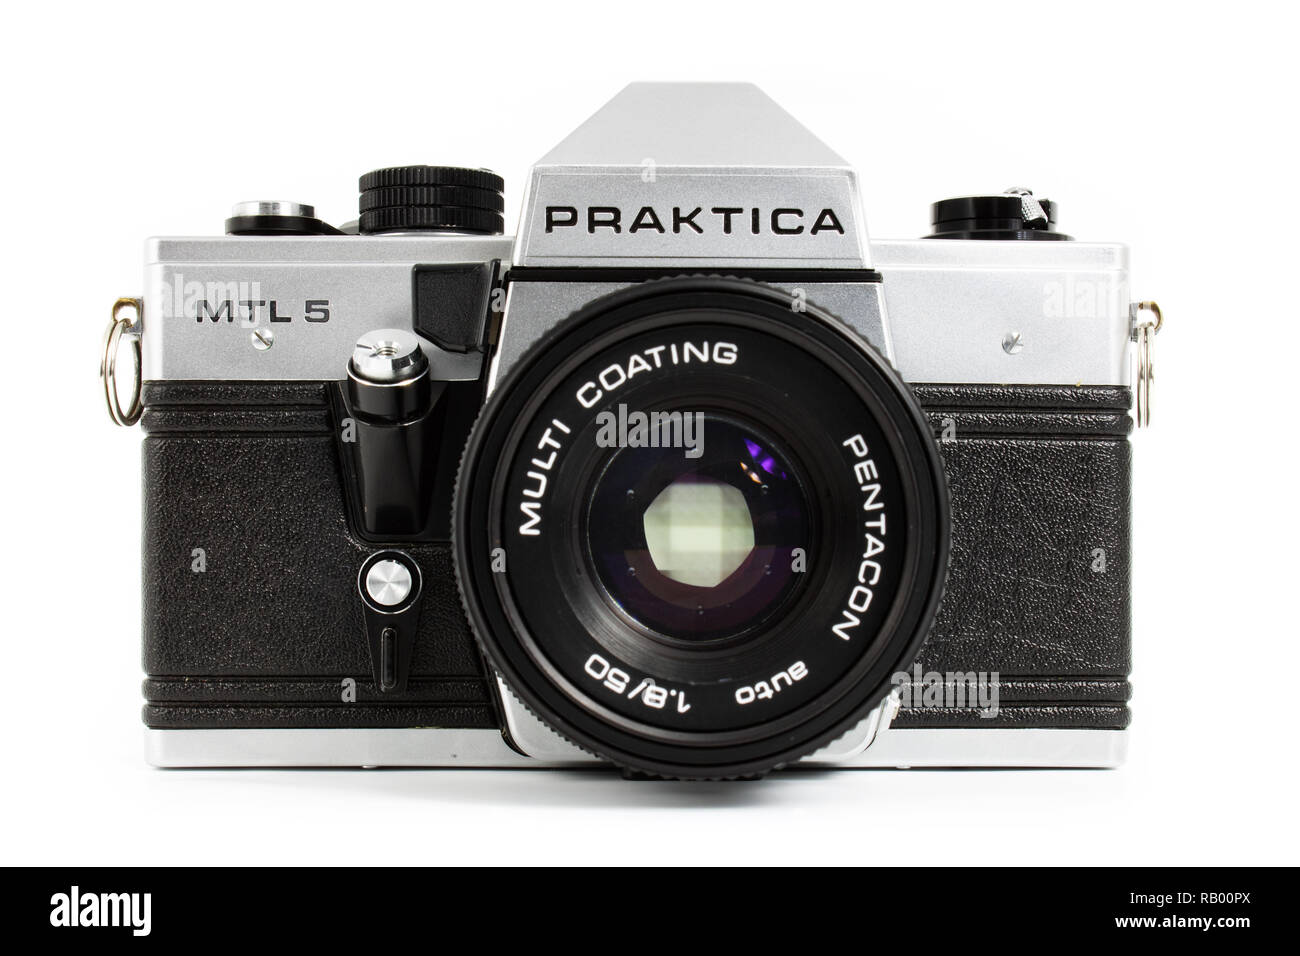 Prague, CZECH REPUBLIC - DECEMBER 24, 2018: Old SLR camera Praktica MTL5 for 35mm film made by German company Pentacon between 1983 and 1985 laid on w - Stock Image